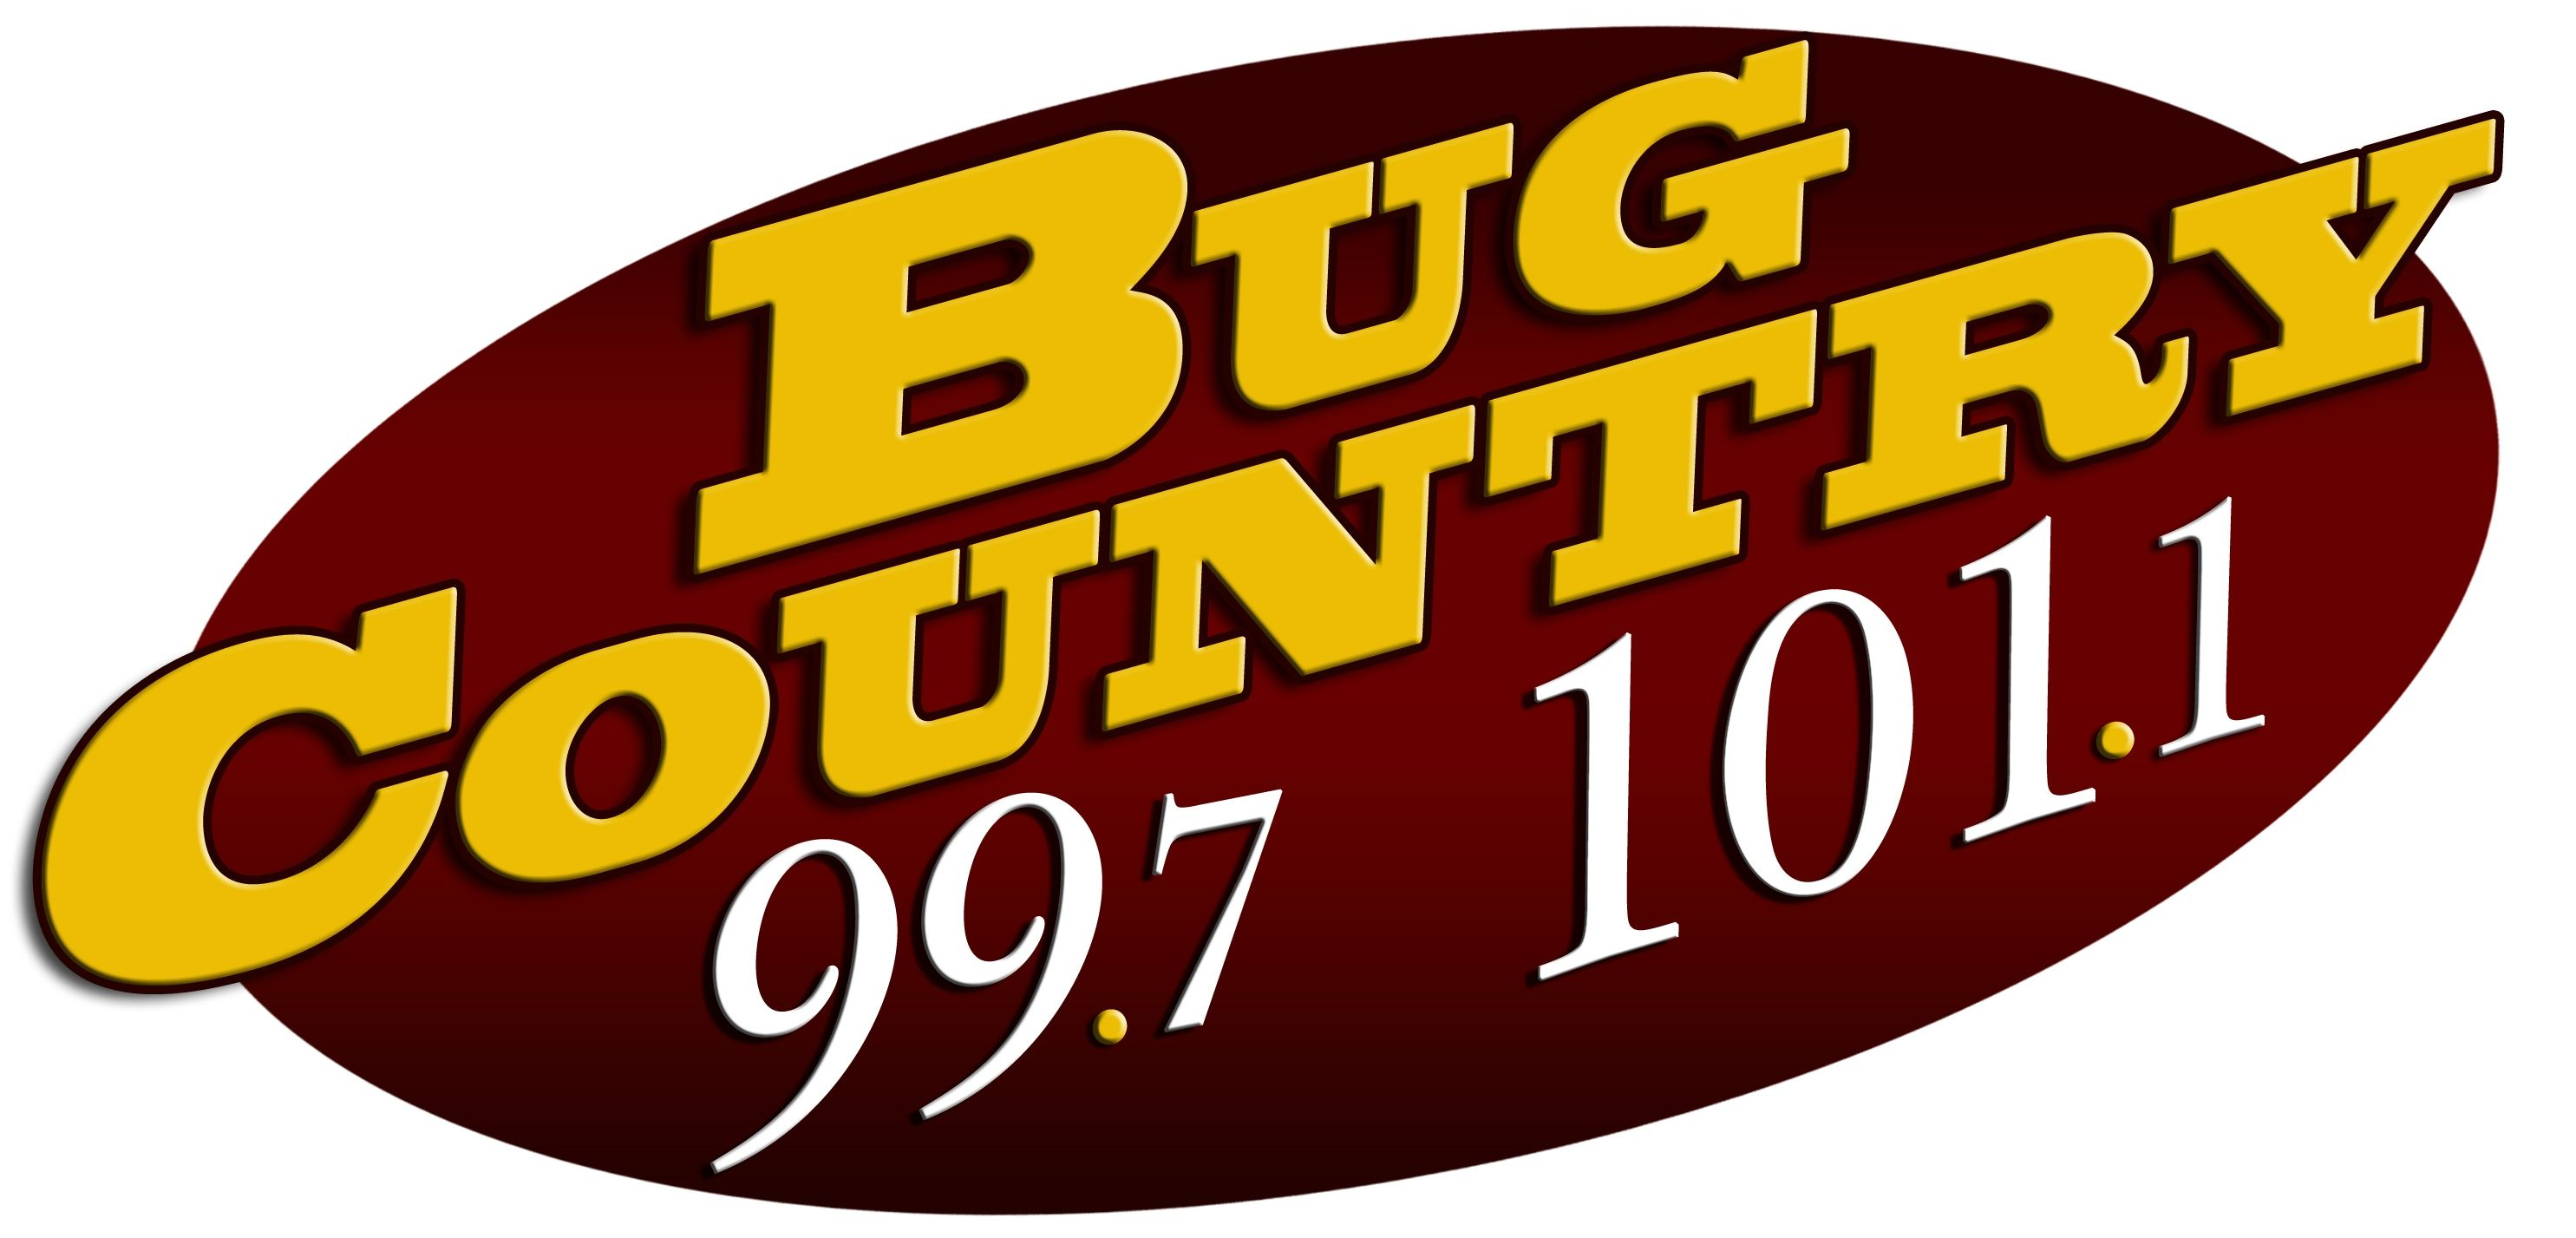 NEW BUG LOGO - 2009 copy